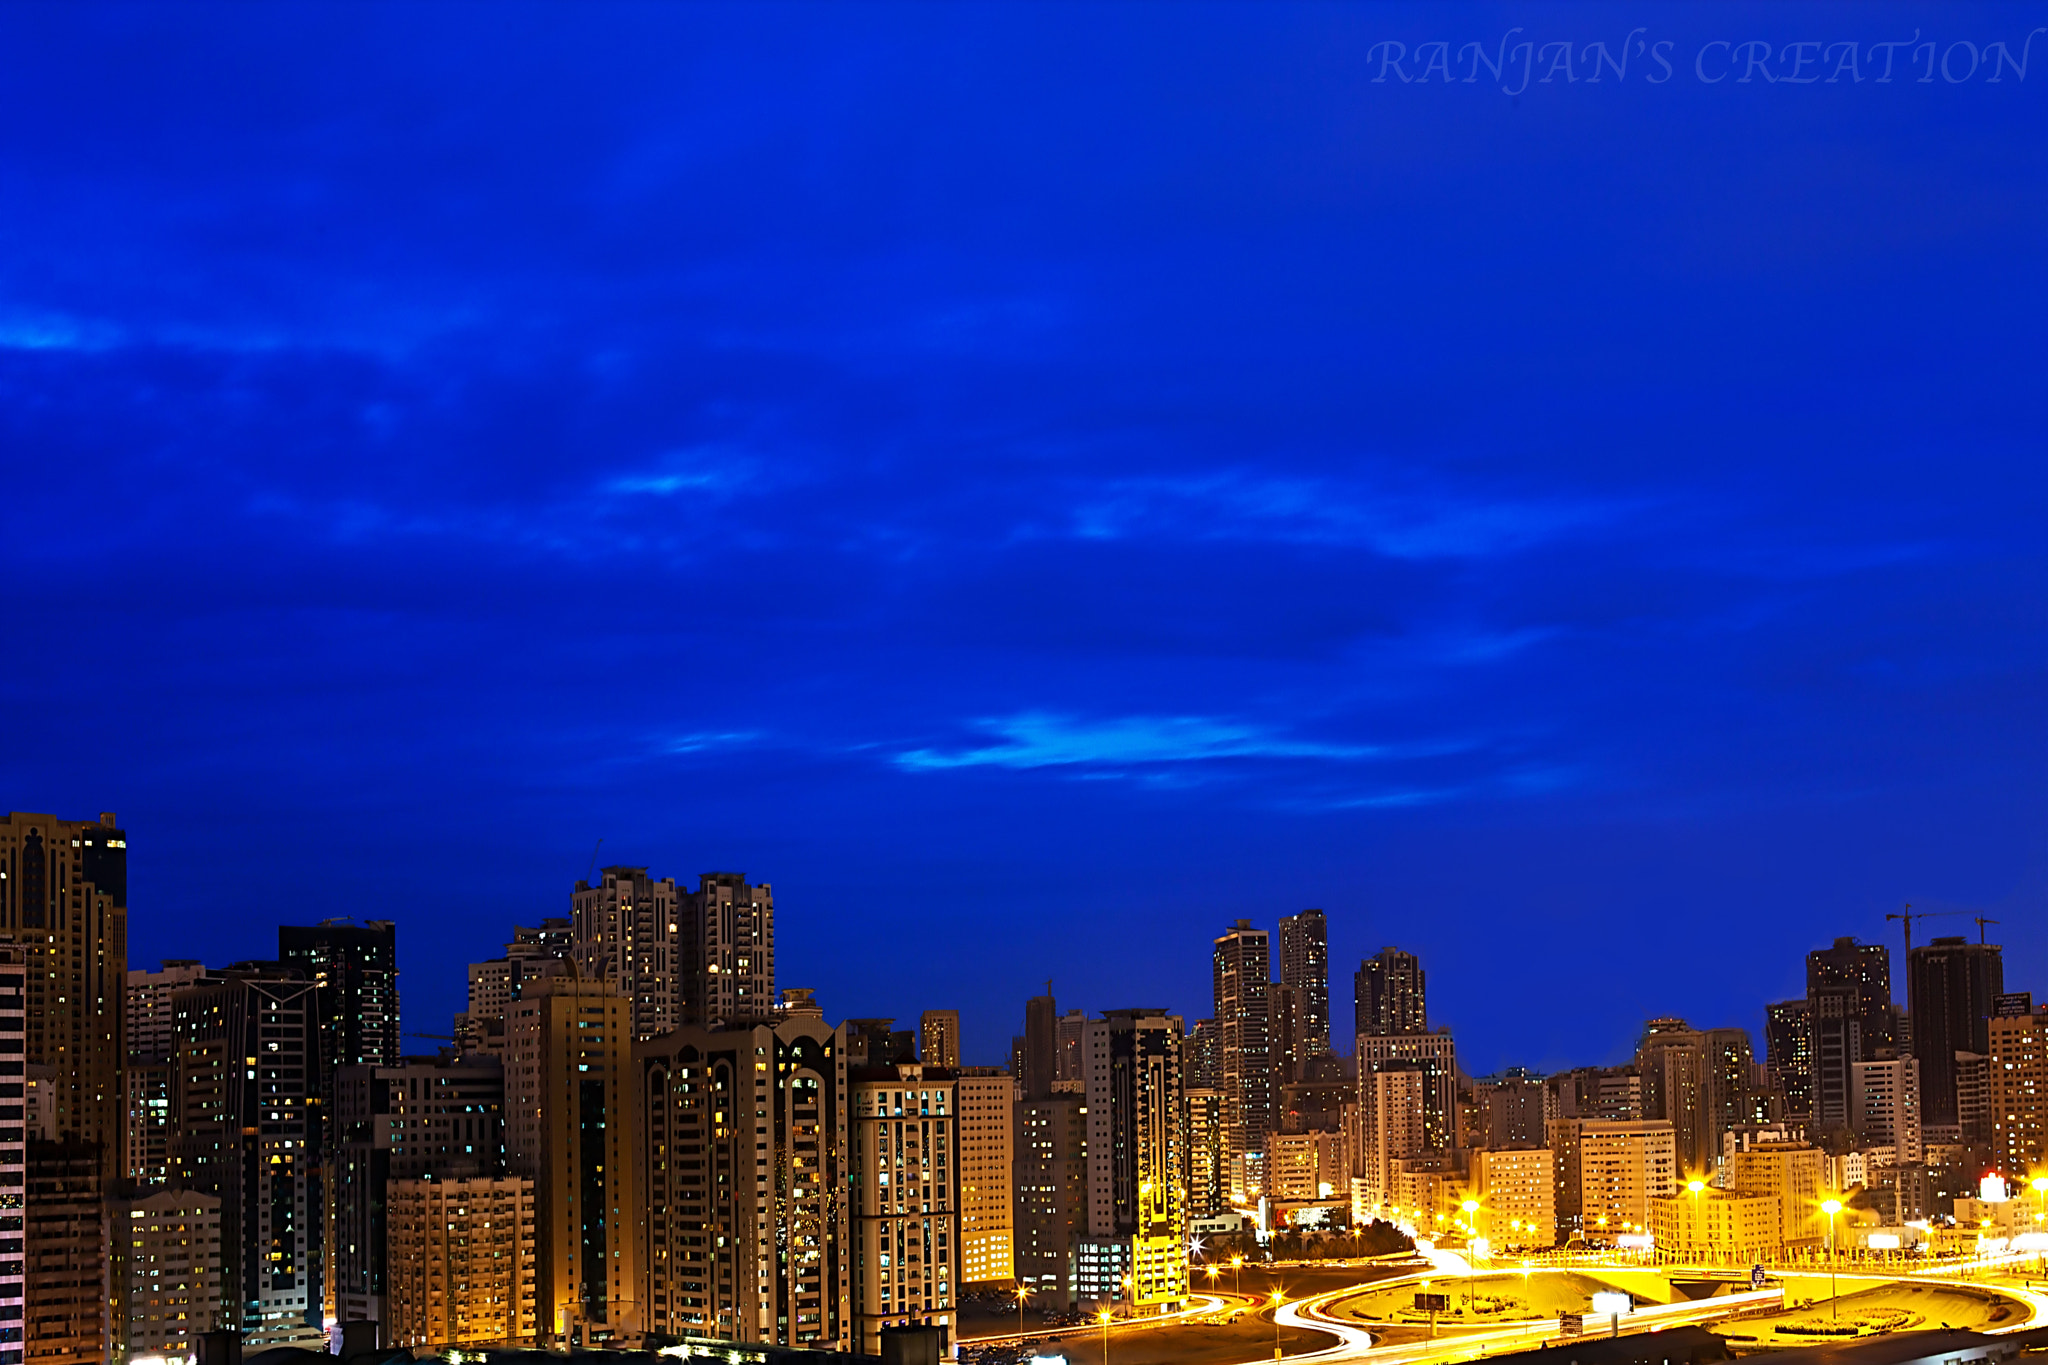 Photograph Sharjah Al Nahada by RANJAN SM on 500px